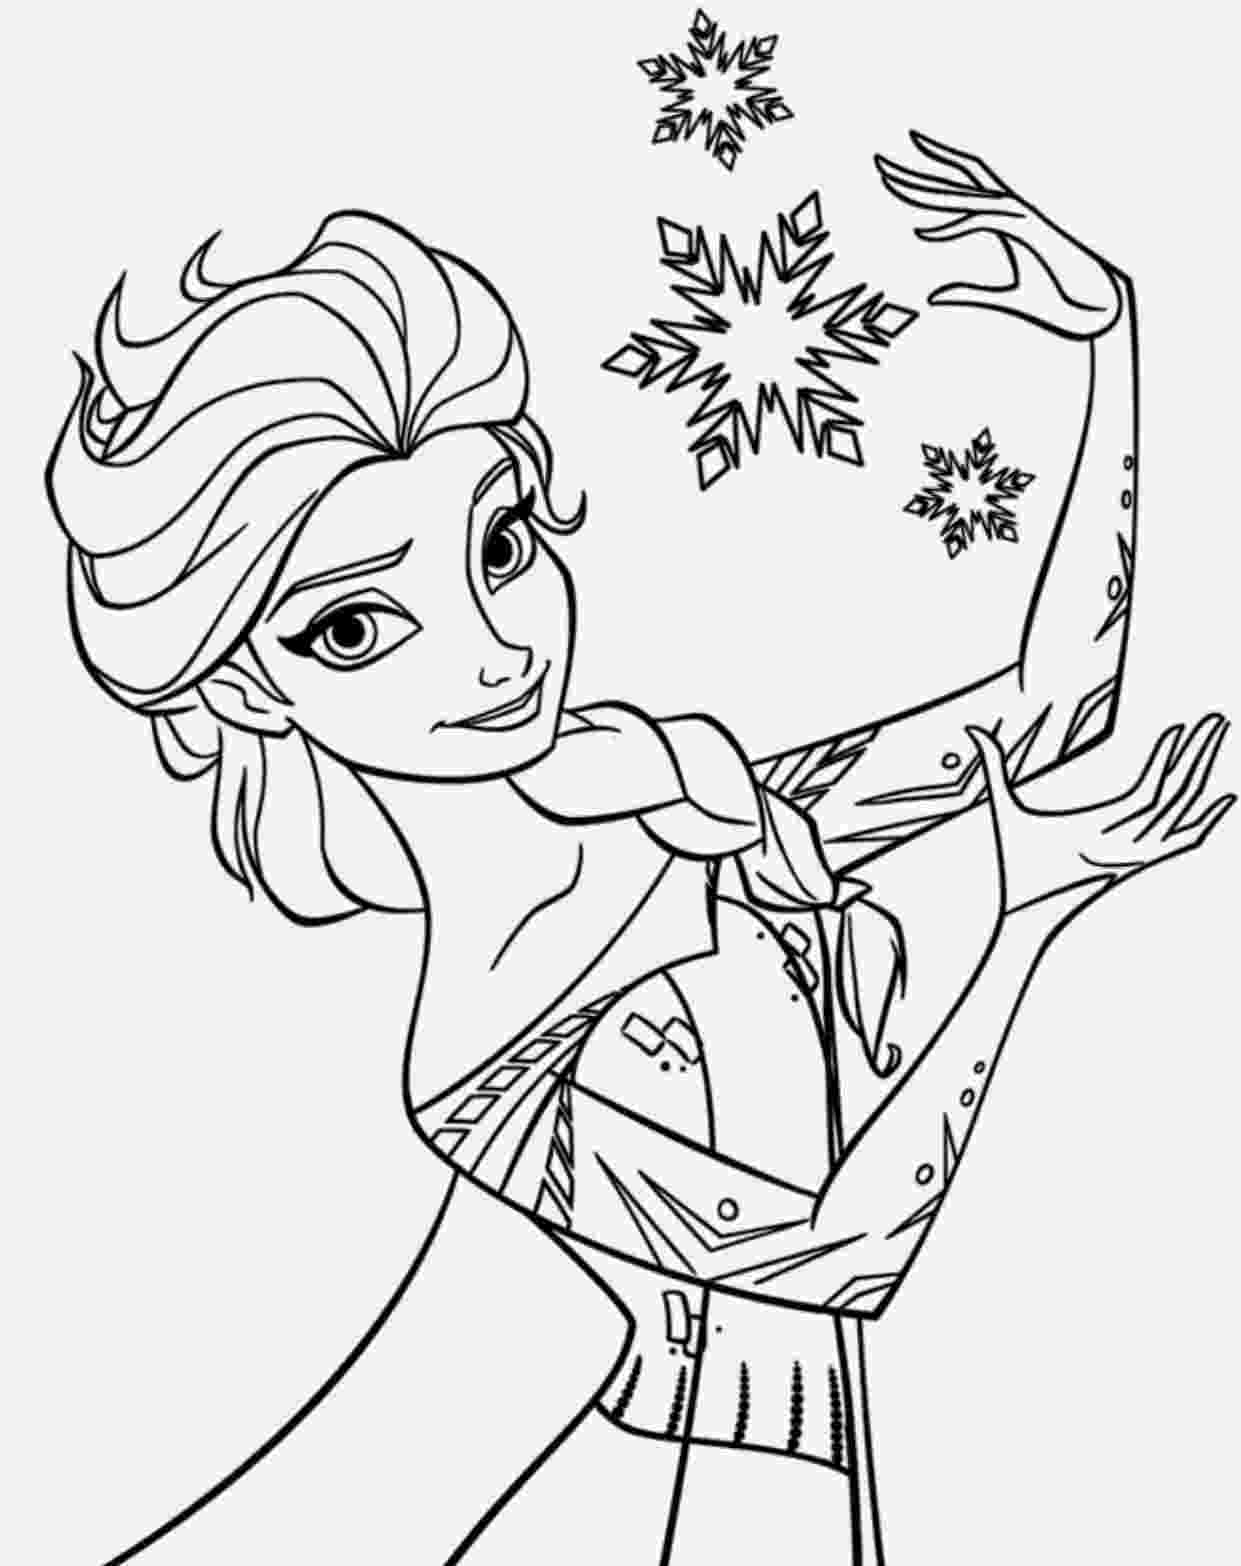 frozen printable colouring pages 15 beautiful disney frozen coloring pages free instant pages colouring frozen printable